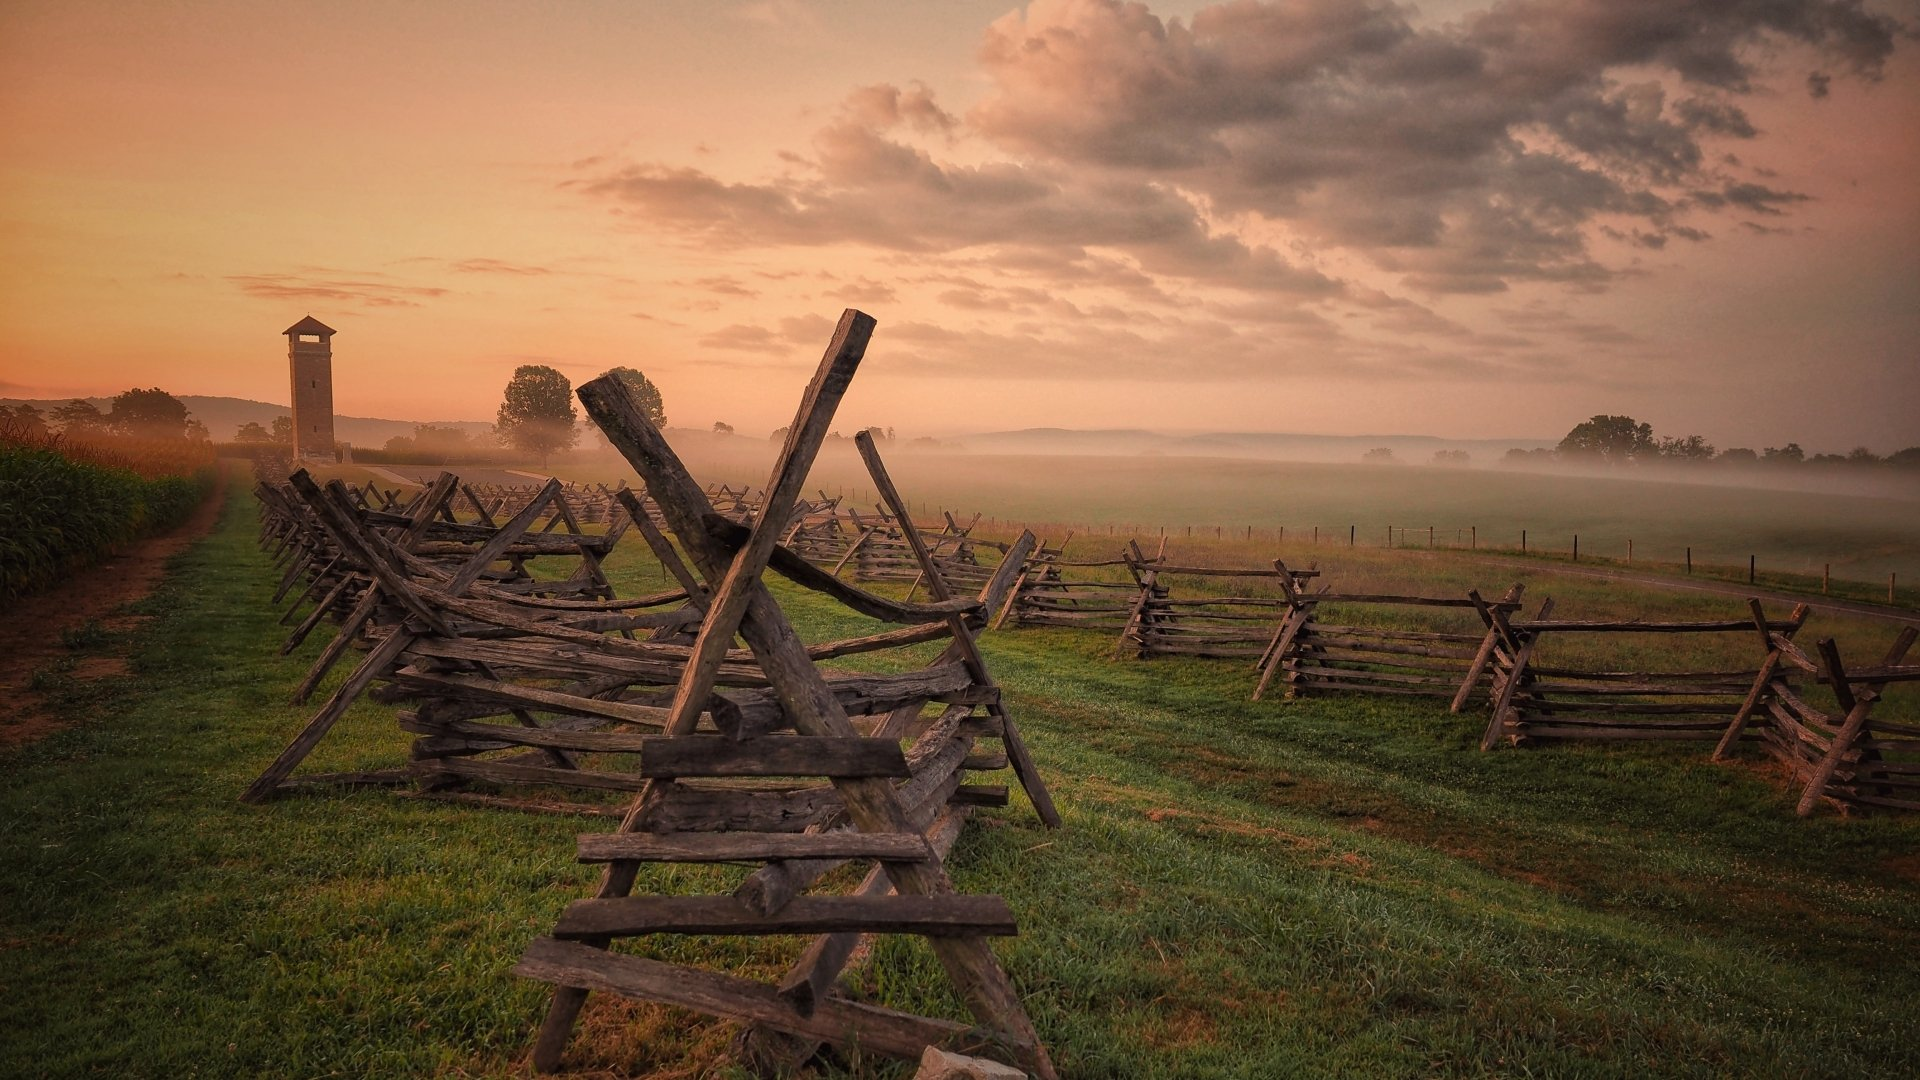 Antietam National Battlefield image by Matt Brant